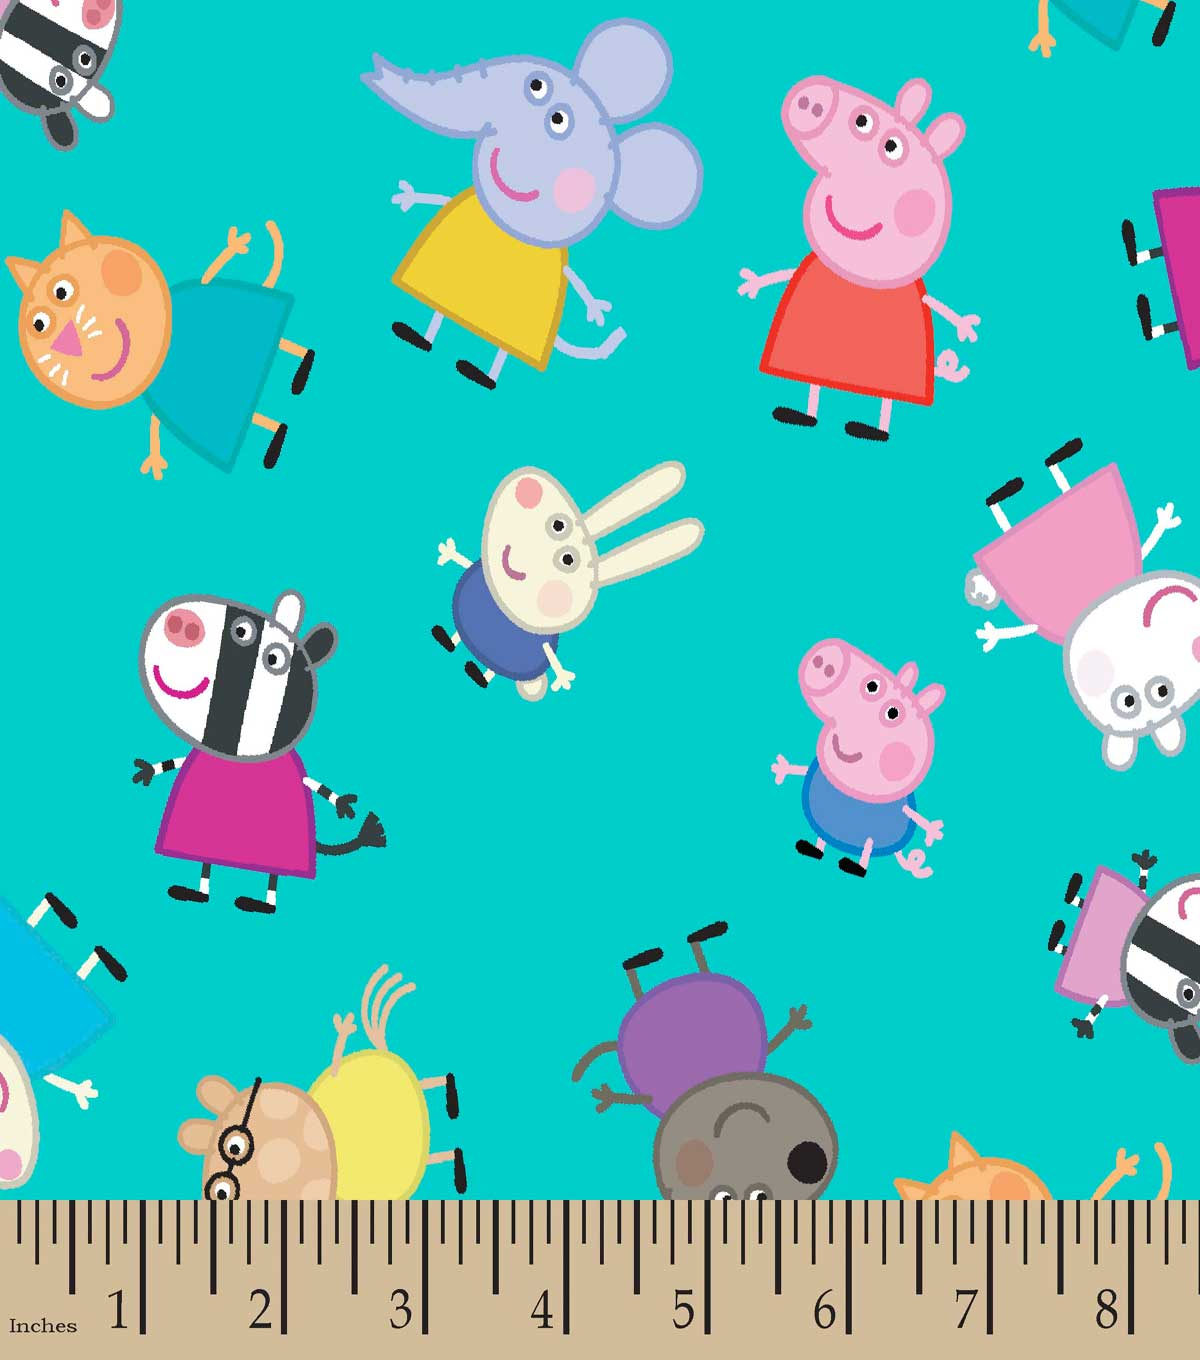 Peppa Pig™ & Friends Print Fabric | JOANN : peppa pig quilting fabric - Adamdwight.com